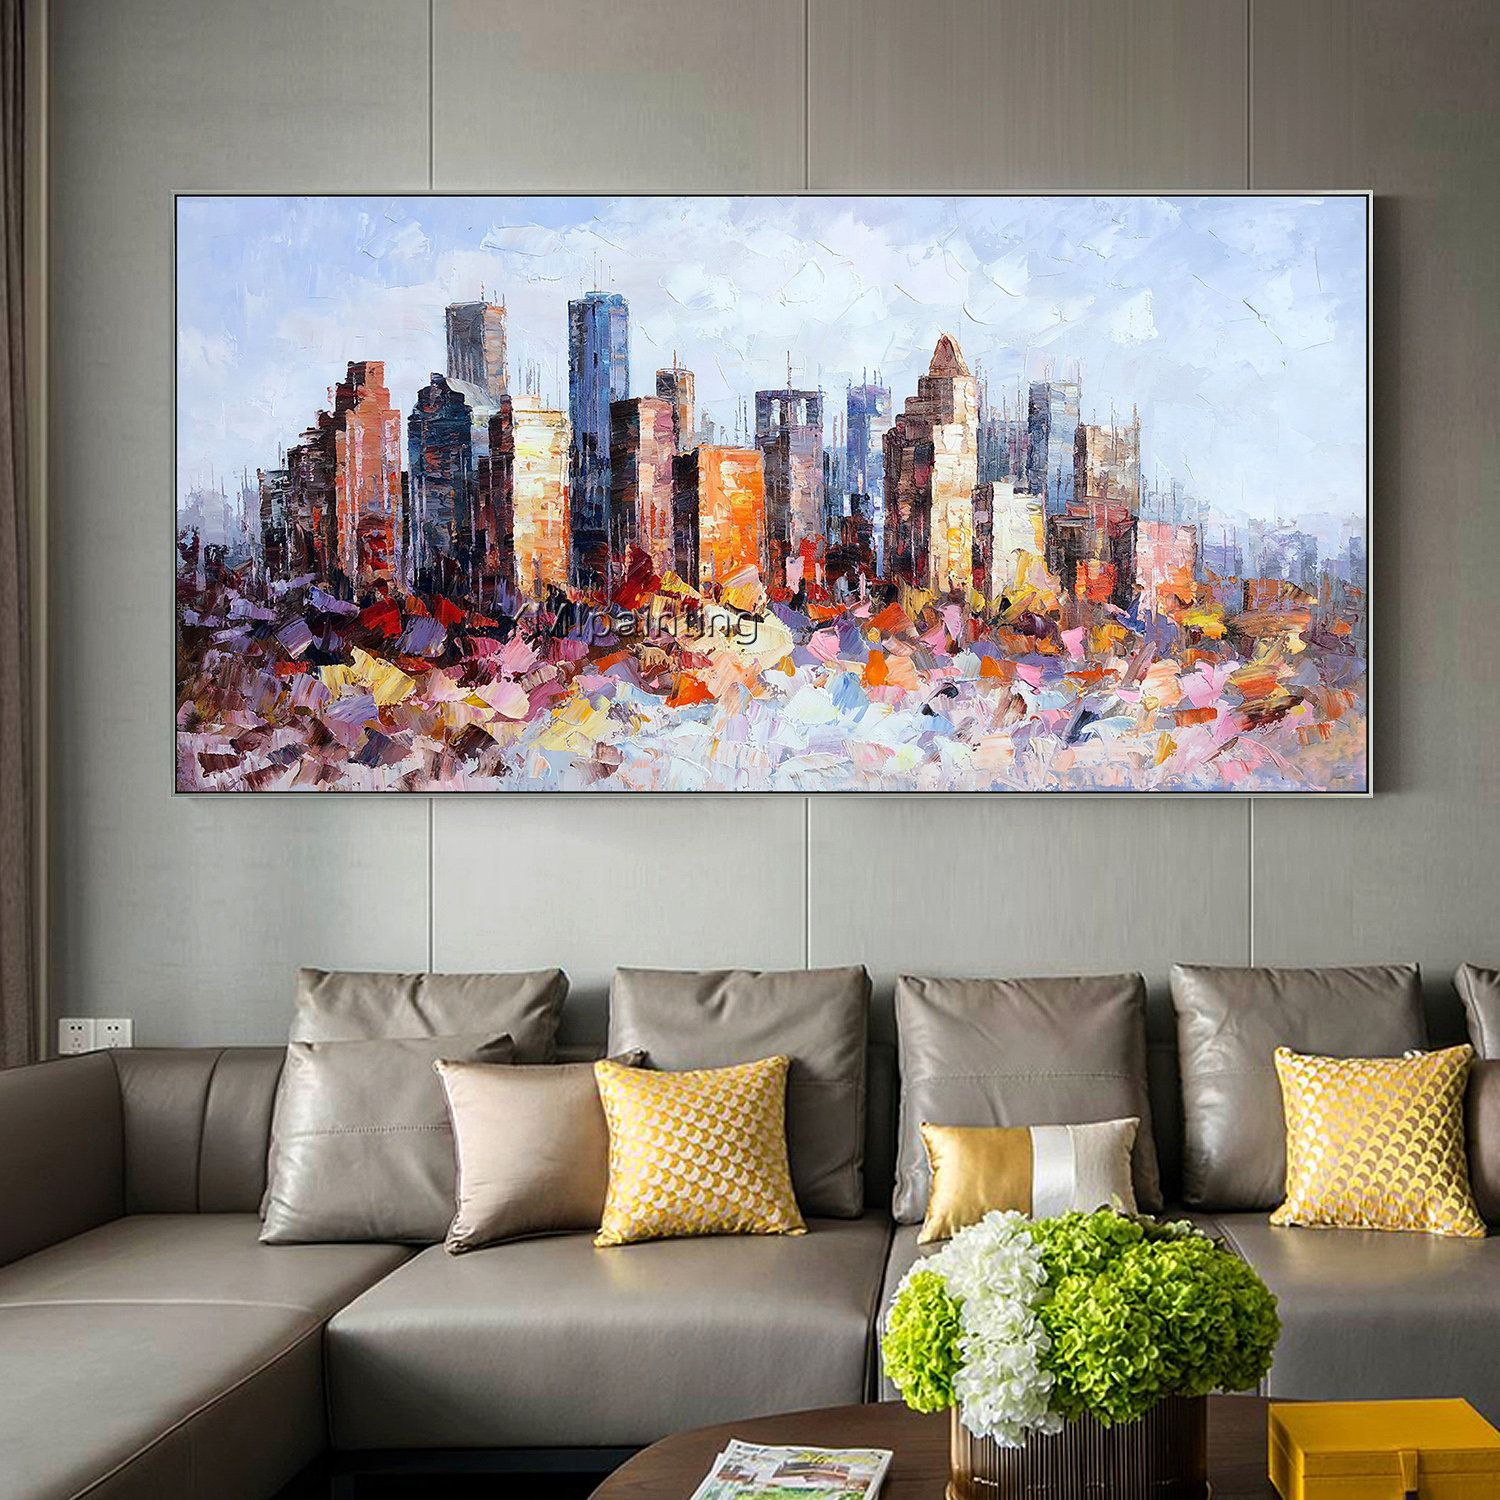 Original New York Skyline oil painting On Canvas modern impasto texture cityscape Large painting wall pictures home decor cuadros abstractos